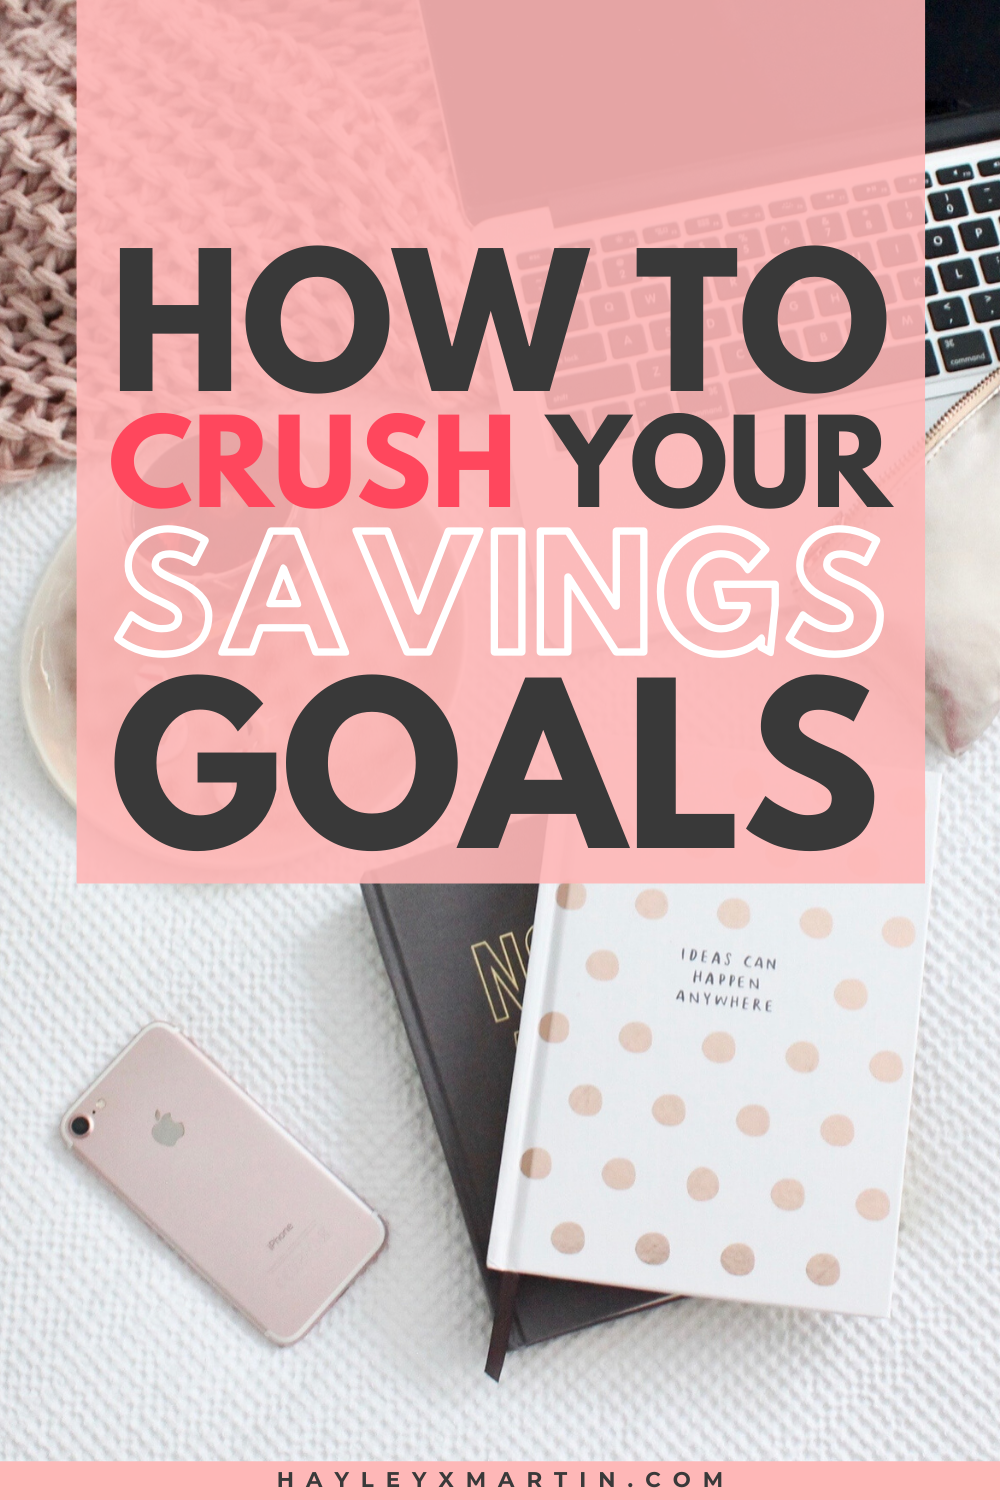 HOW TO CRUSH YOUR SAVINGS GOALS | HAYLEYXMARTIN